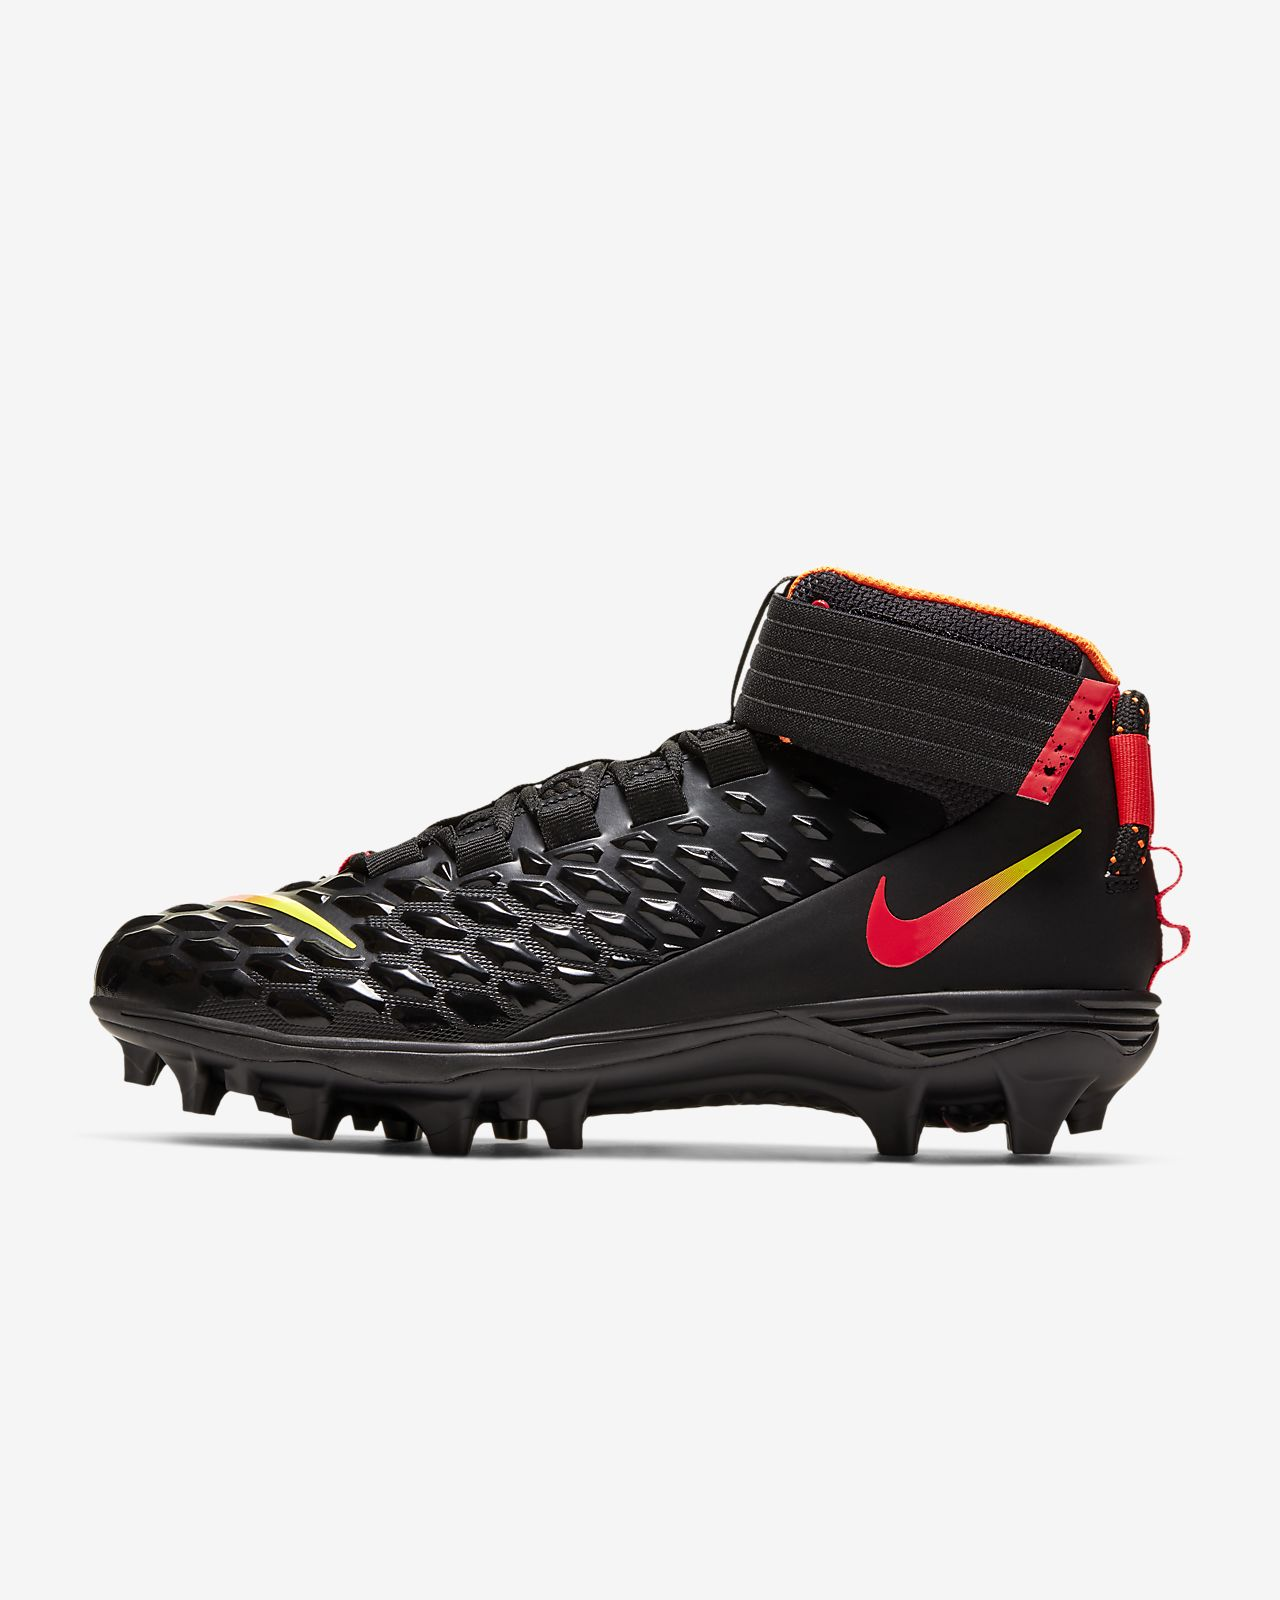 021fa79774a Nike Force Savage Pro 2 Men s Football Cleat. Nike.com